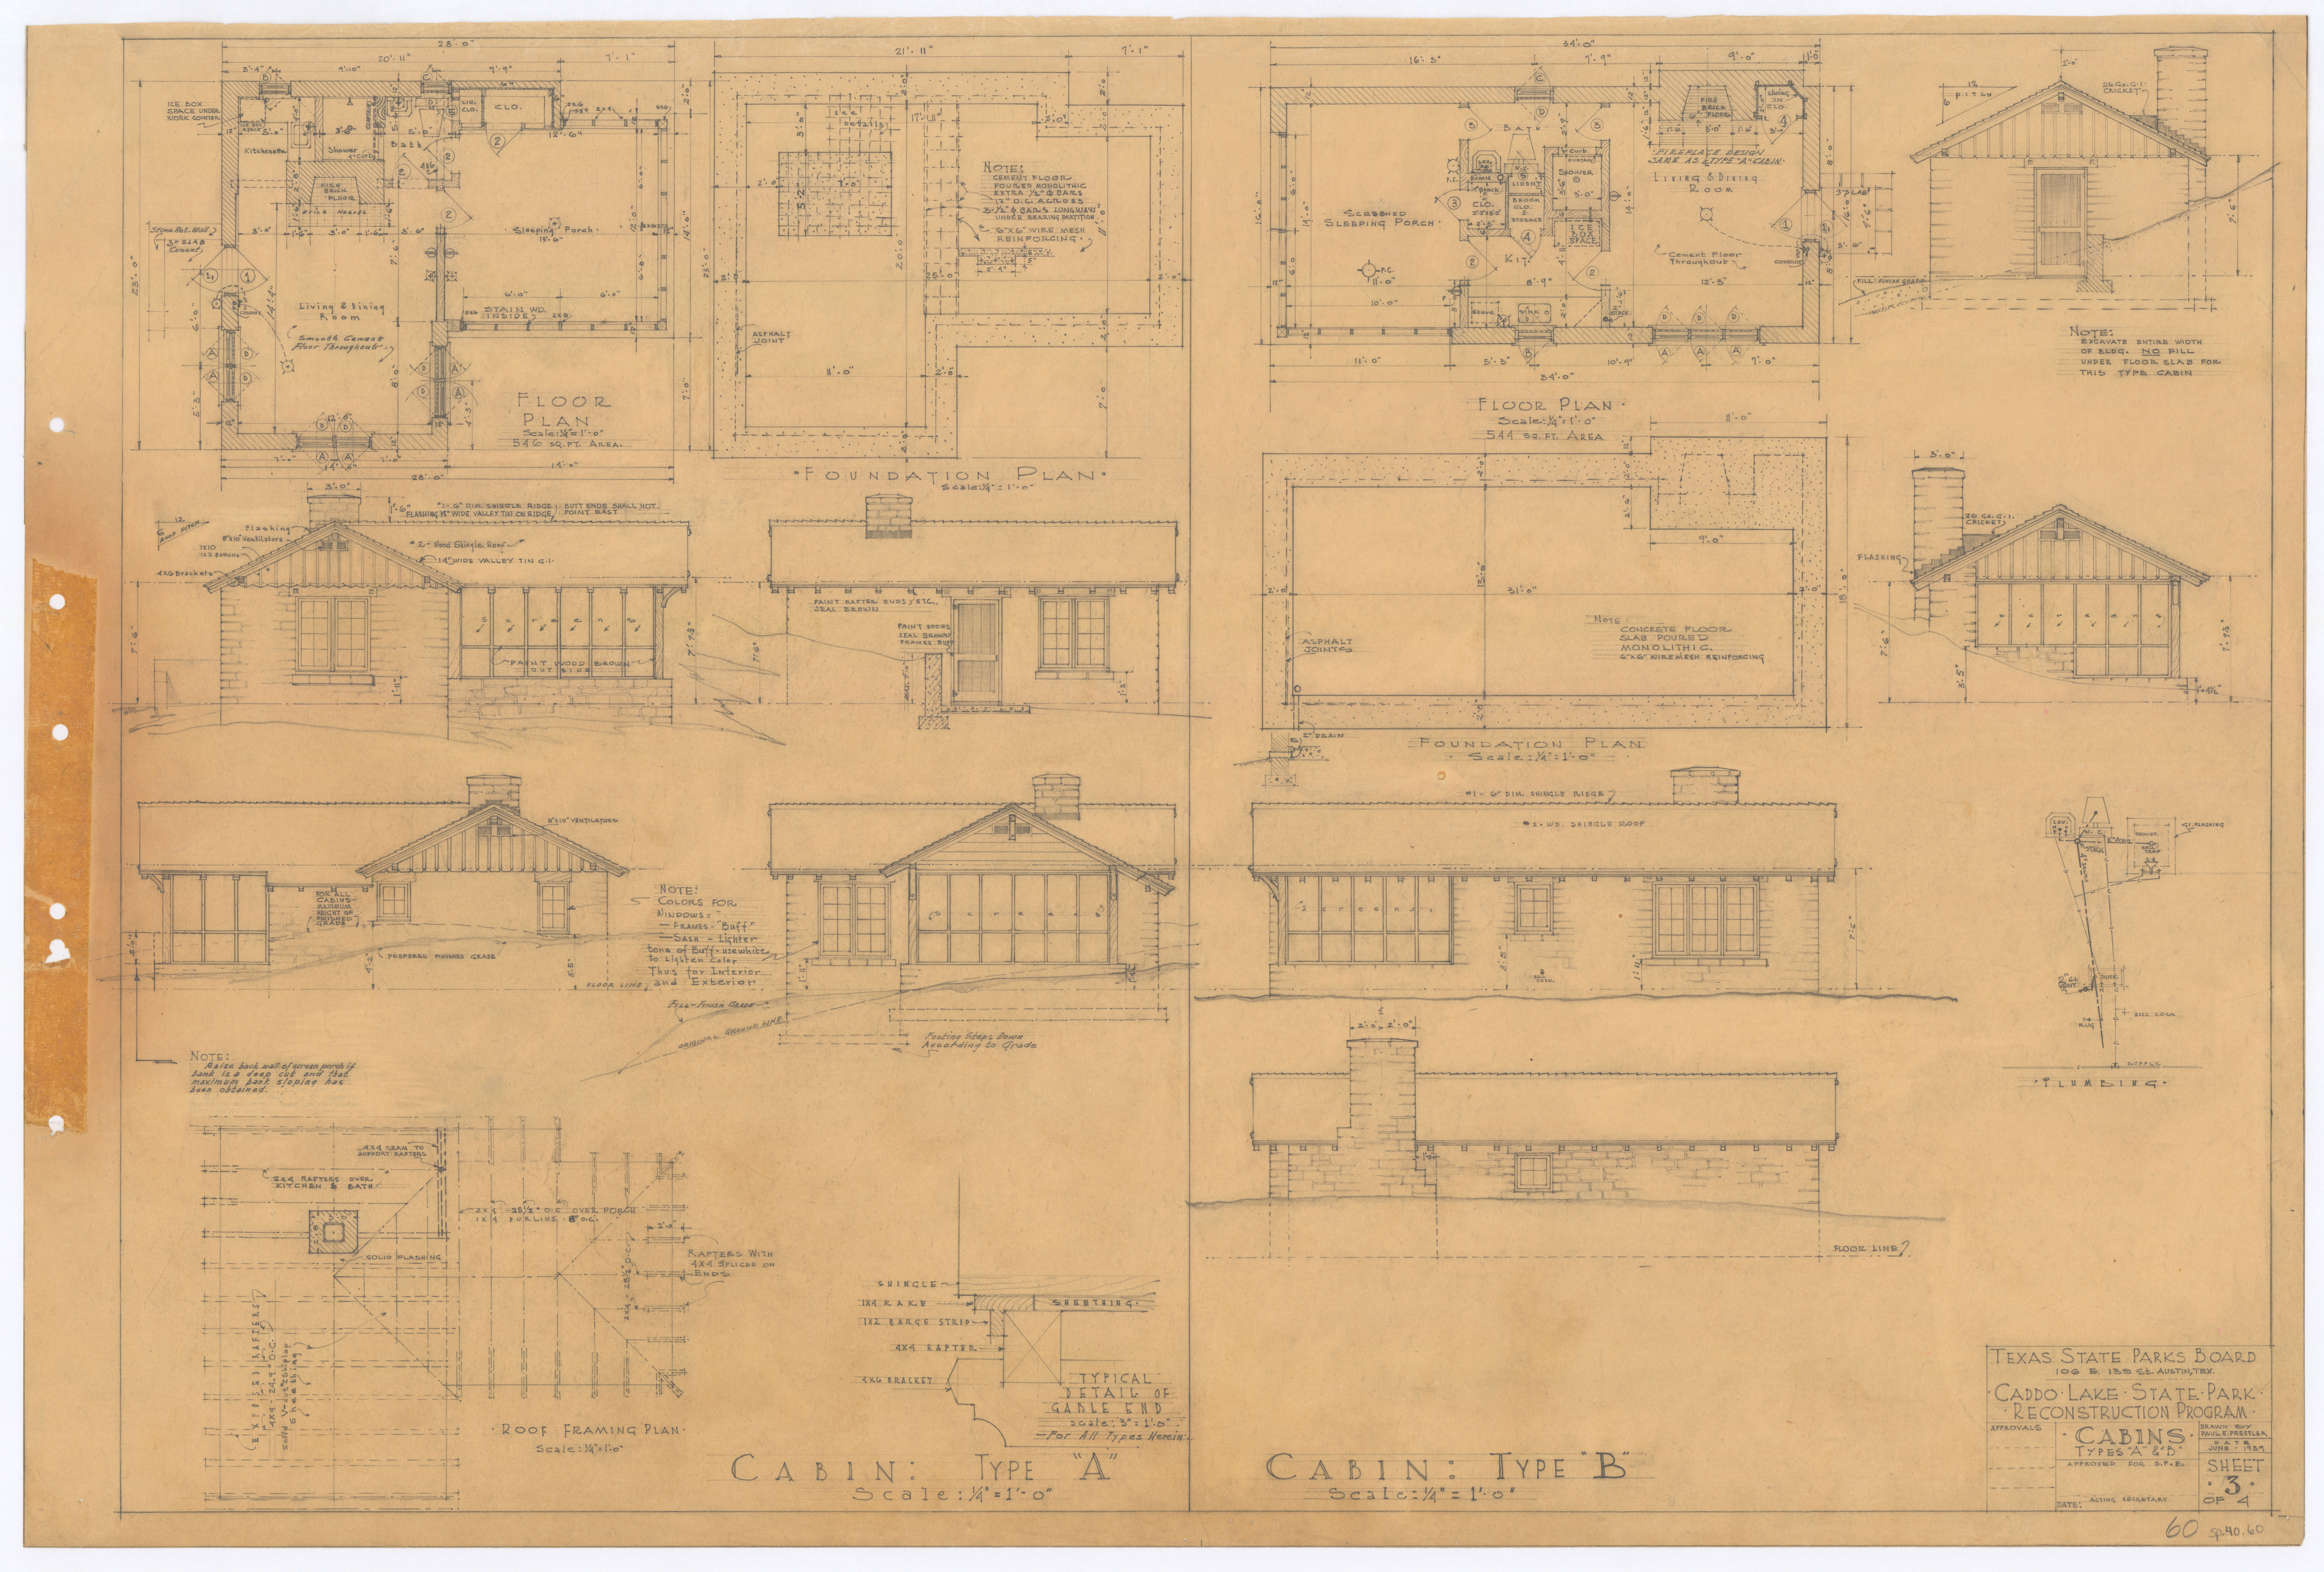 Caddo Lake State Park - Cabins, Type A and B - SP.40.60